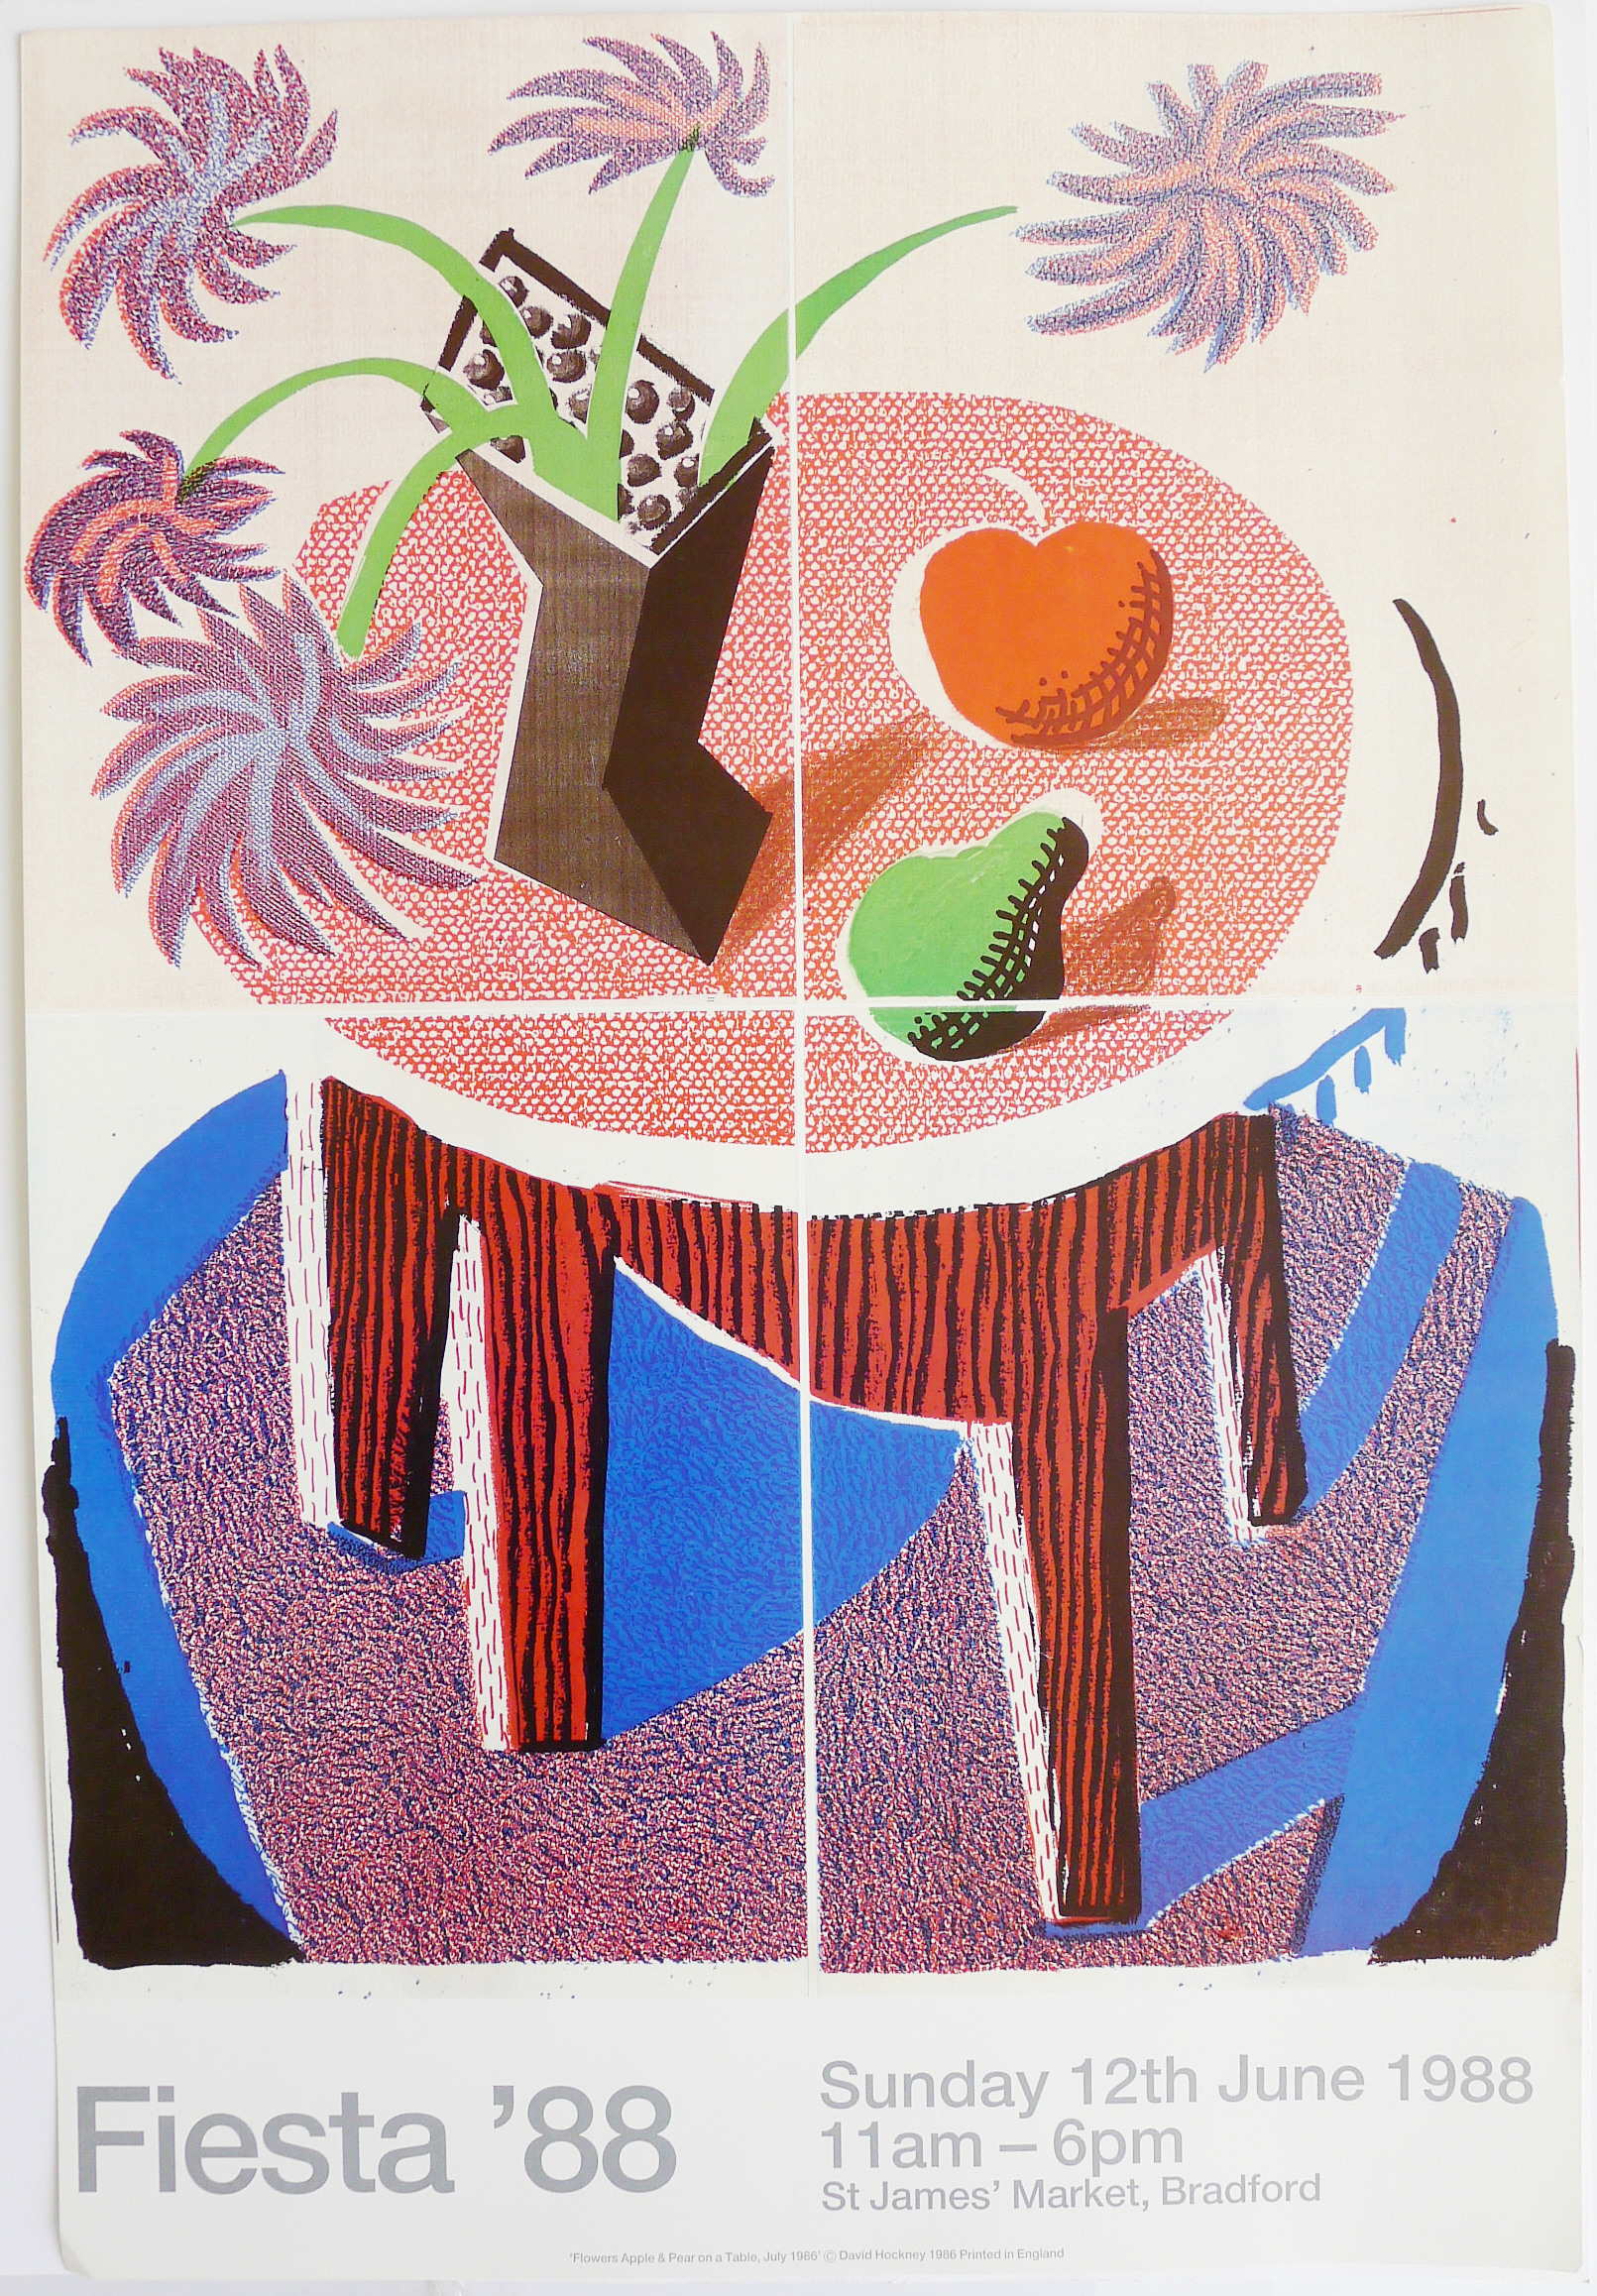 DAVID HOCKNEY RA [b.1937]. Fiesta '88. Lithographic poster on thick, hot-pressed paper, produced